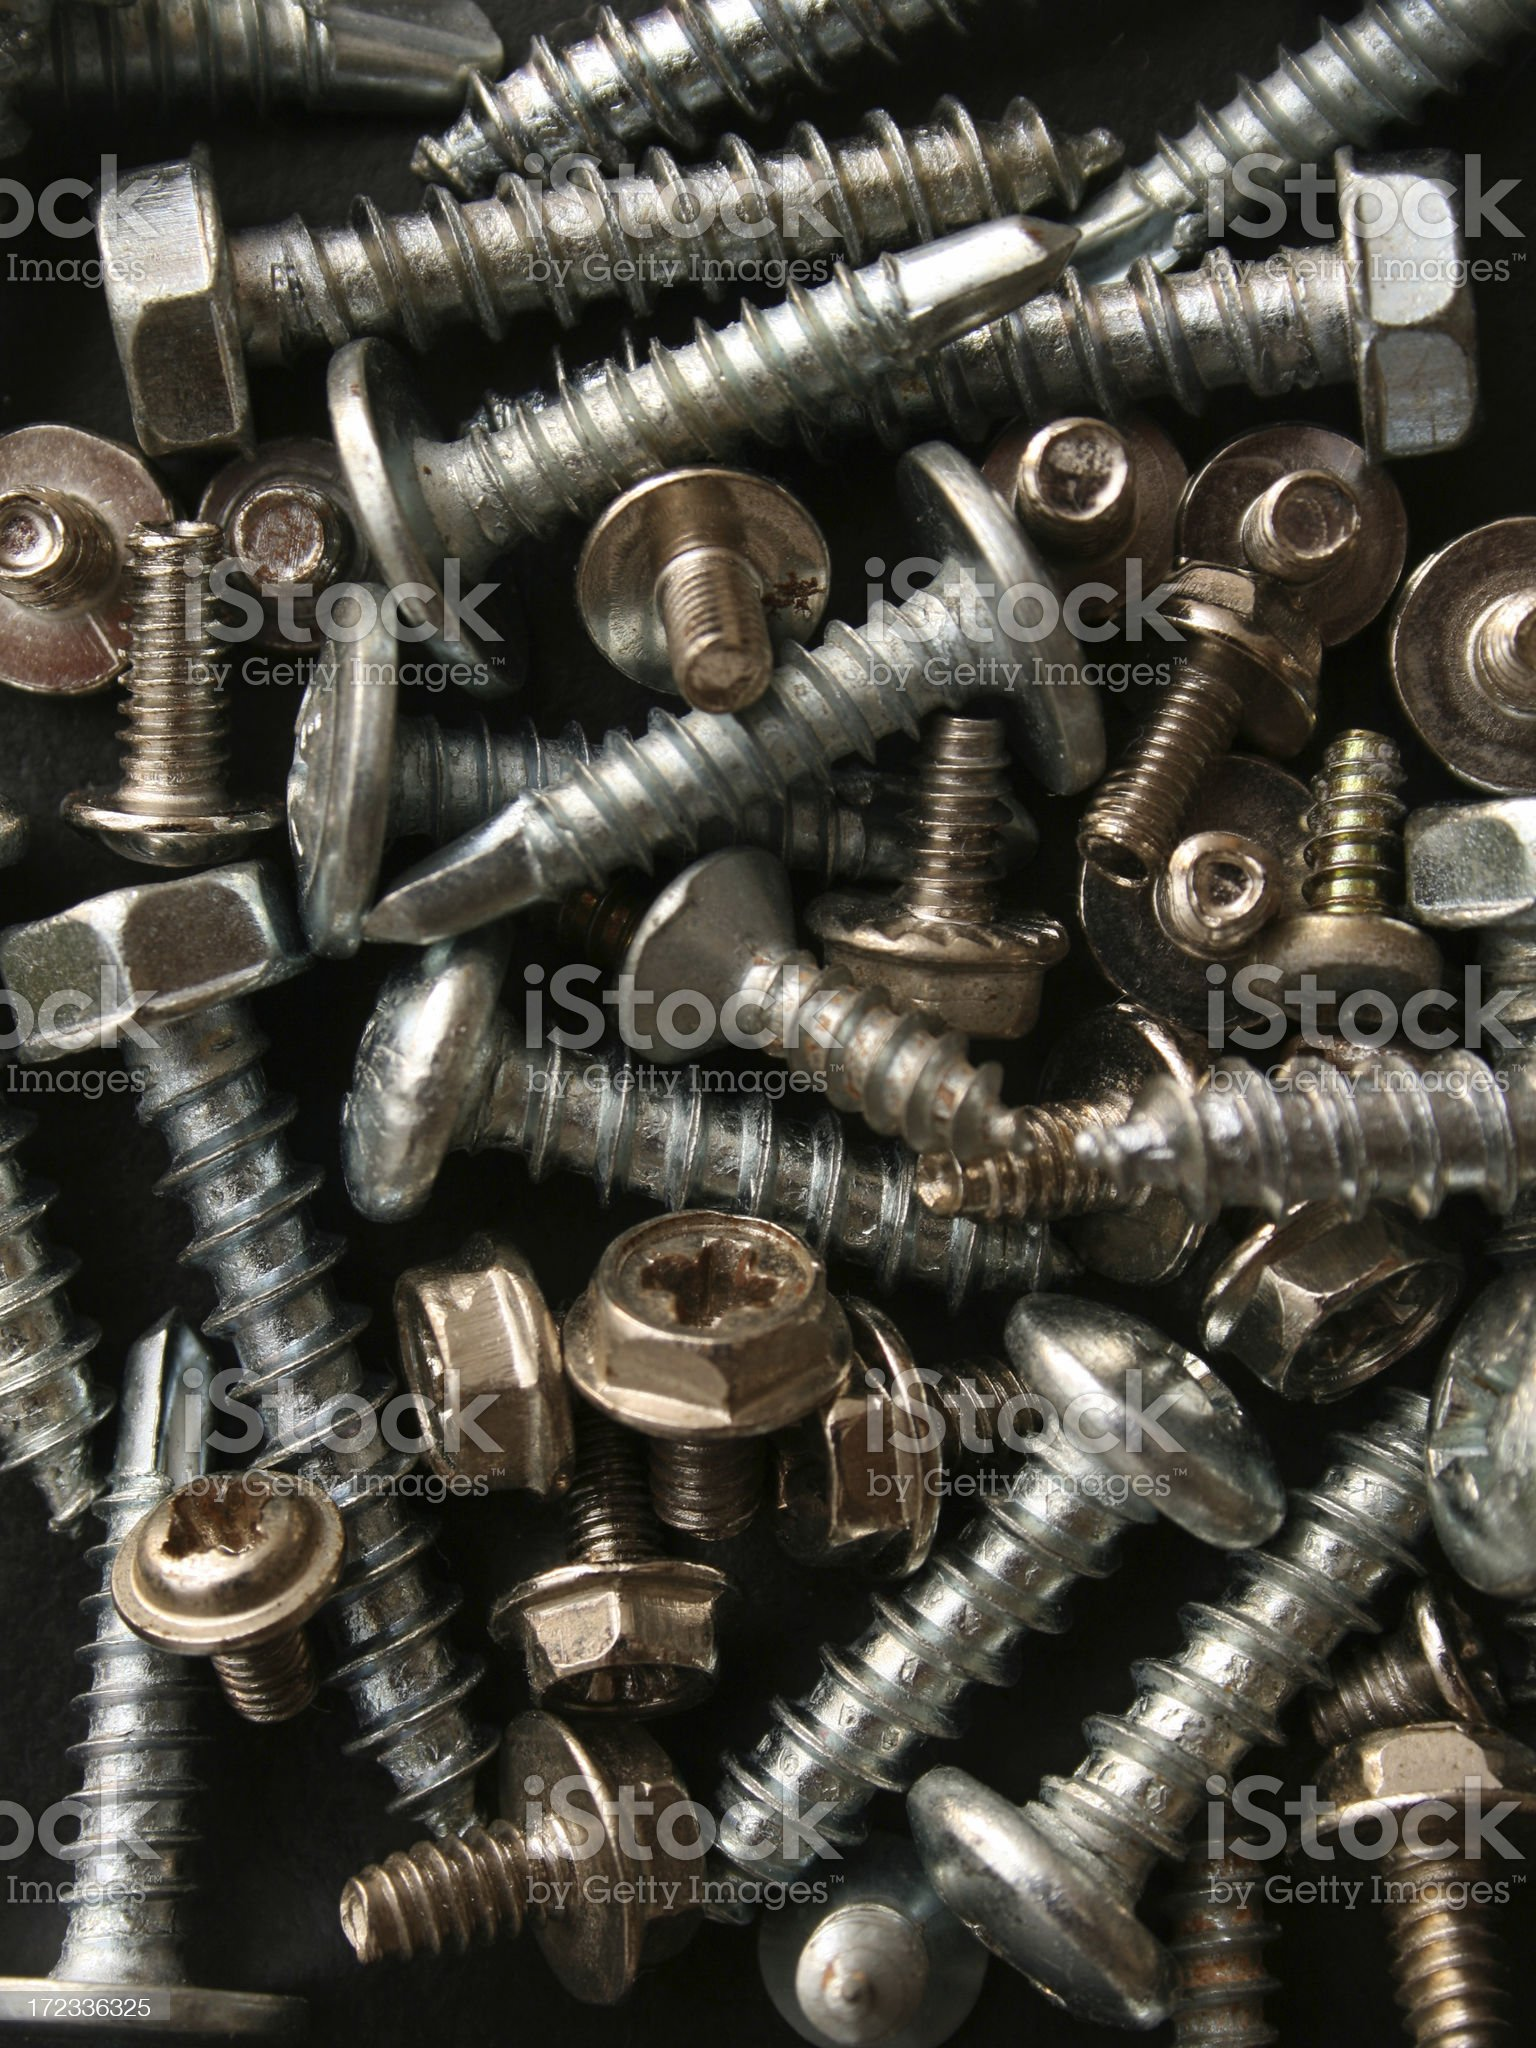 Screws background royalty-free stock photo